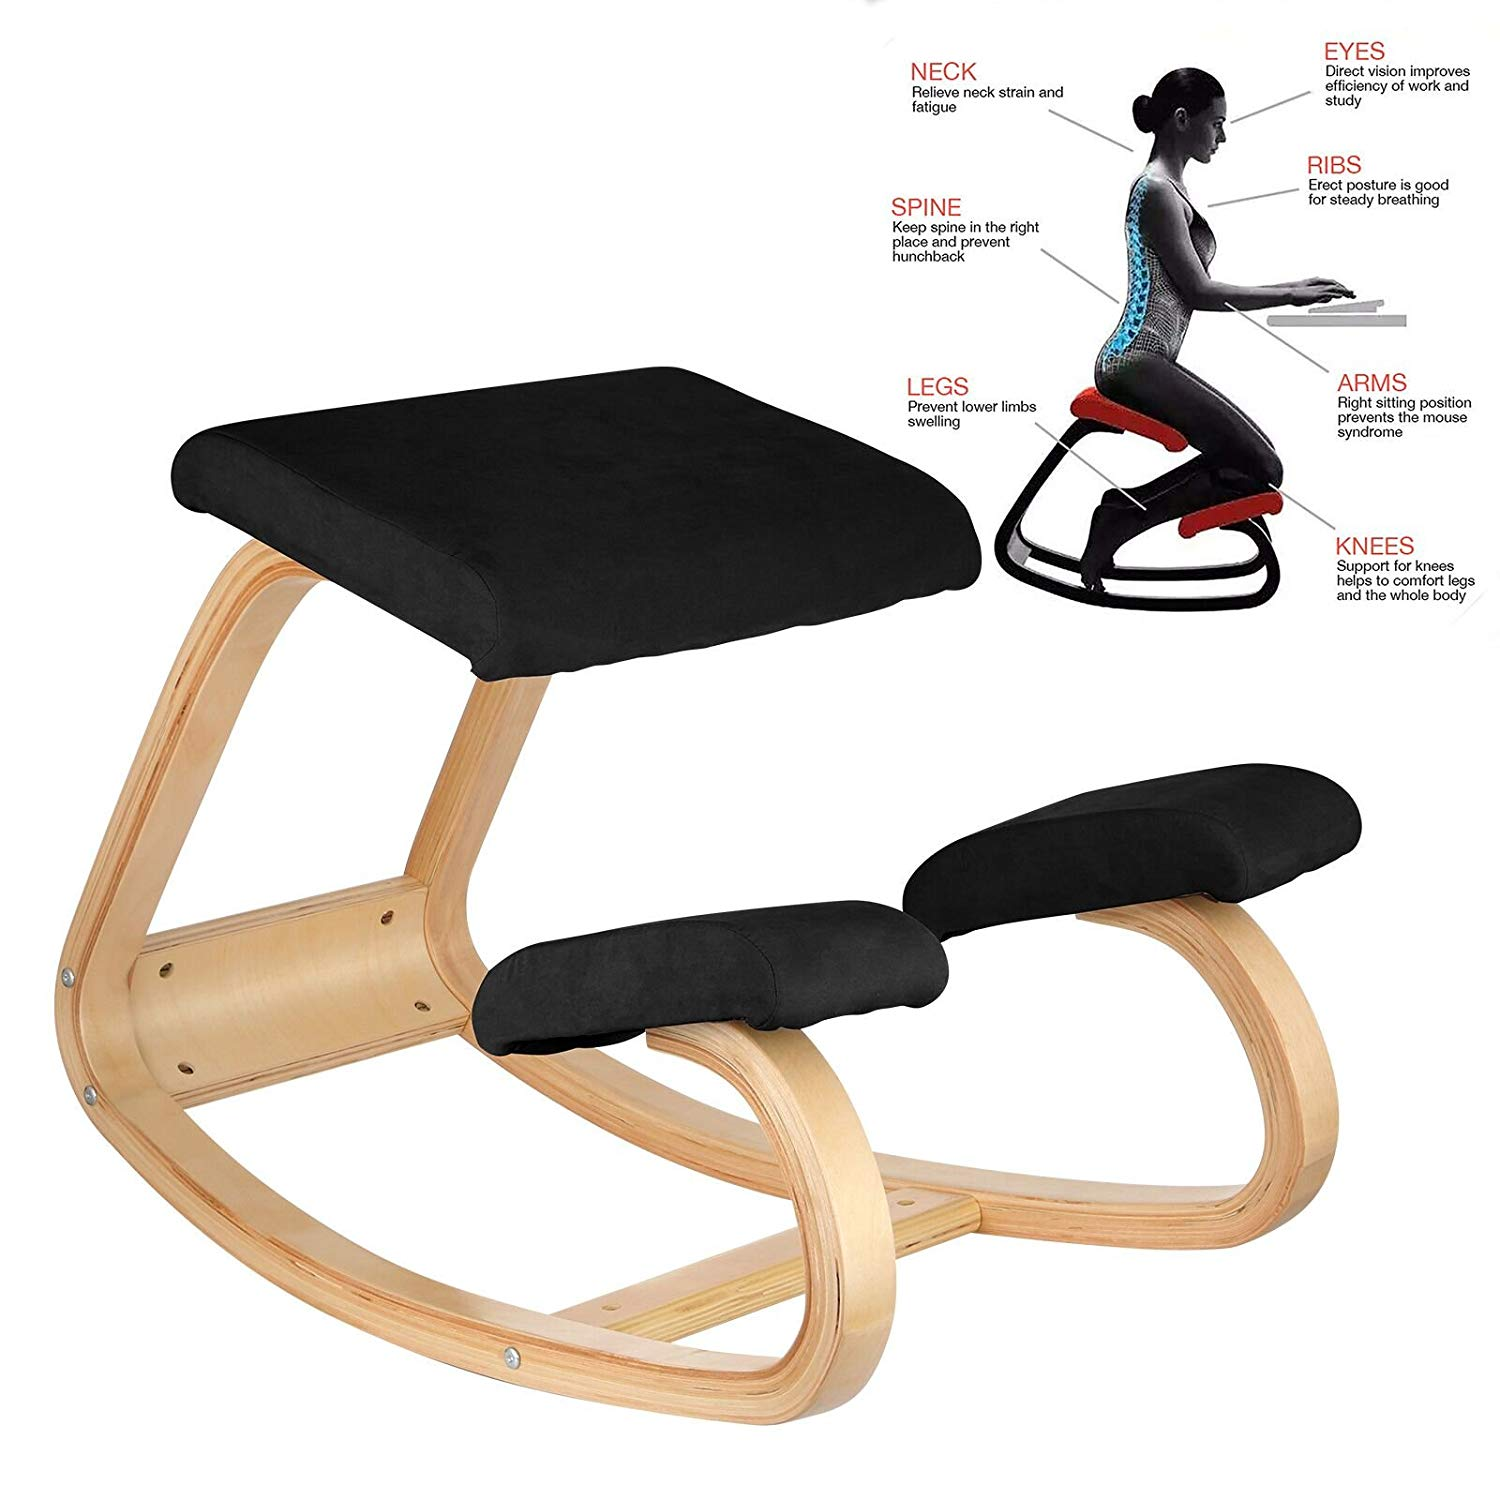 Awe Inspiring Bestequip Ergonomic Kneeling Chair Heavy Duty Better Posture Kneeling Stool Office Chair Home For Body Shaping Relieveing Stress Meditation Desk Pdpeps Interior Chair Design Pdpepsorg